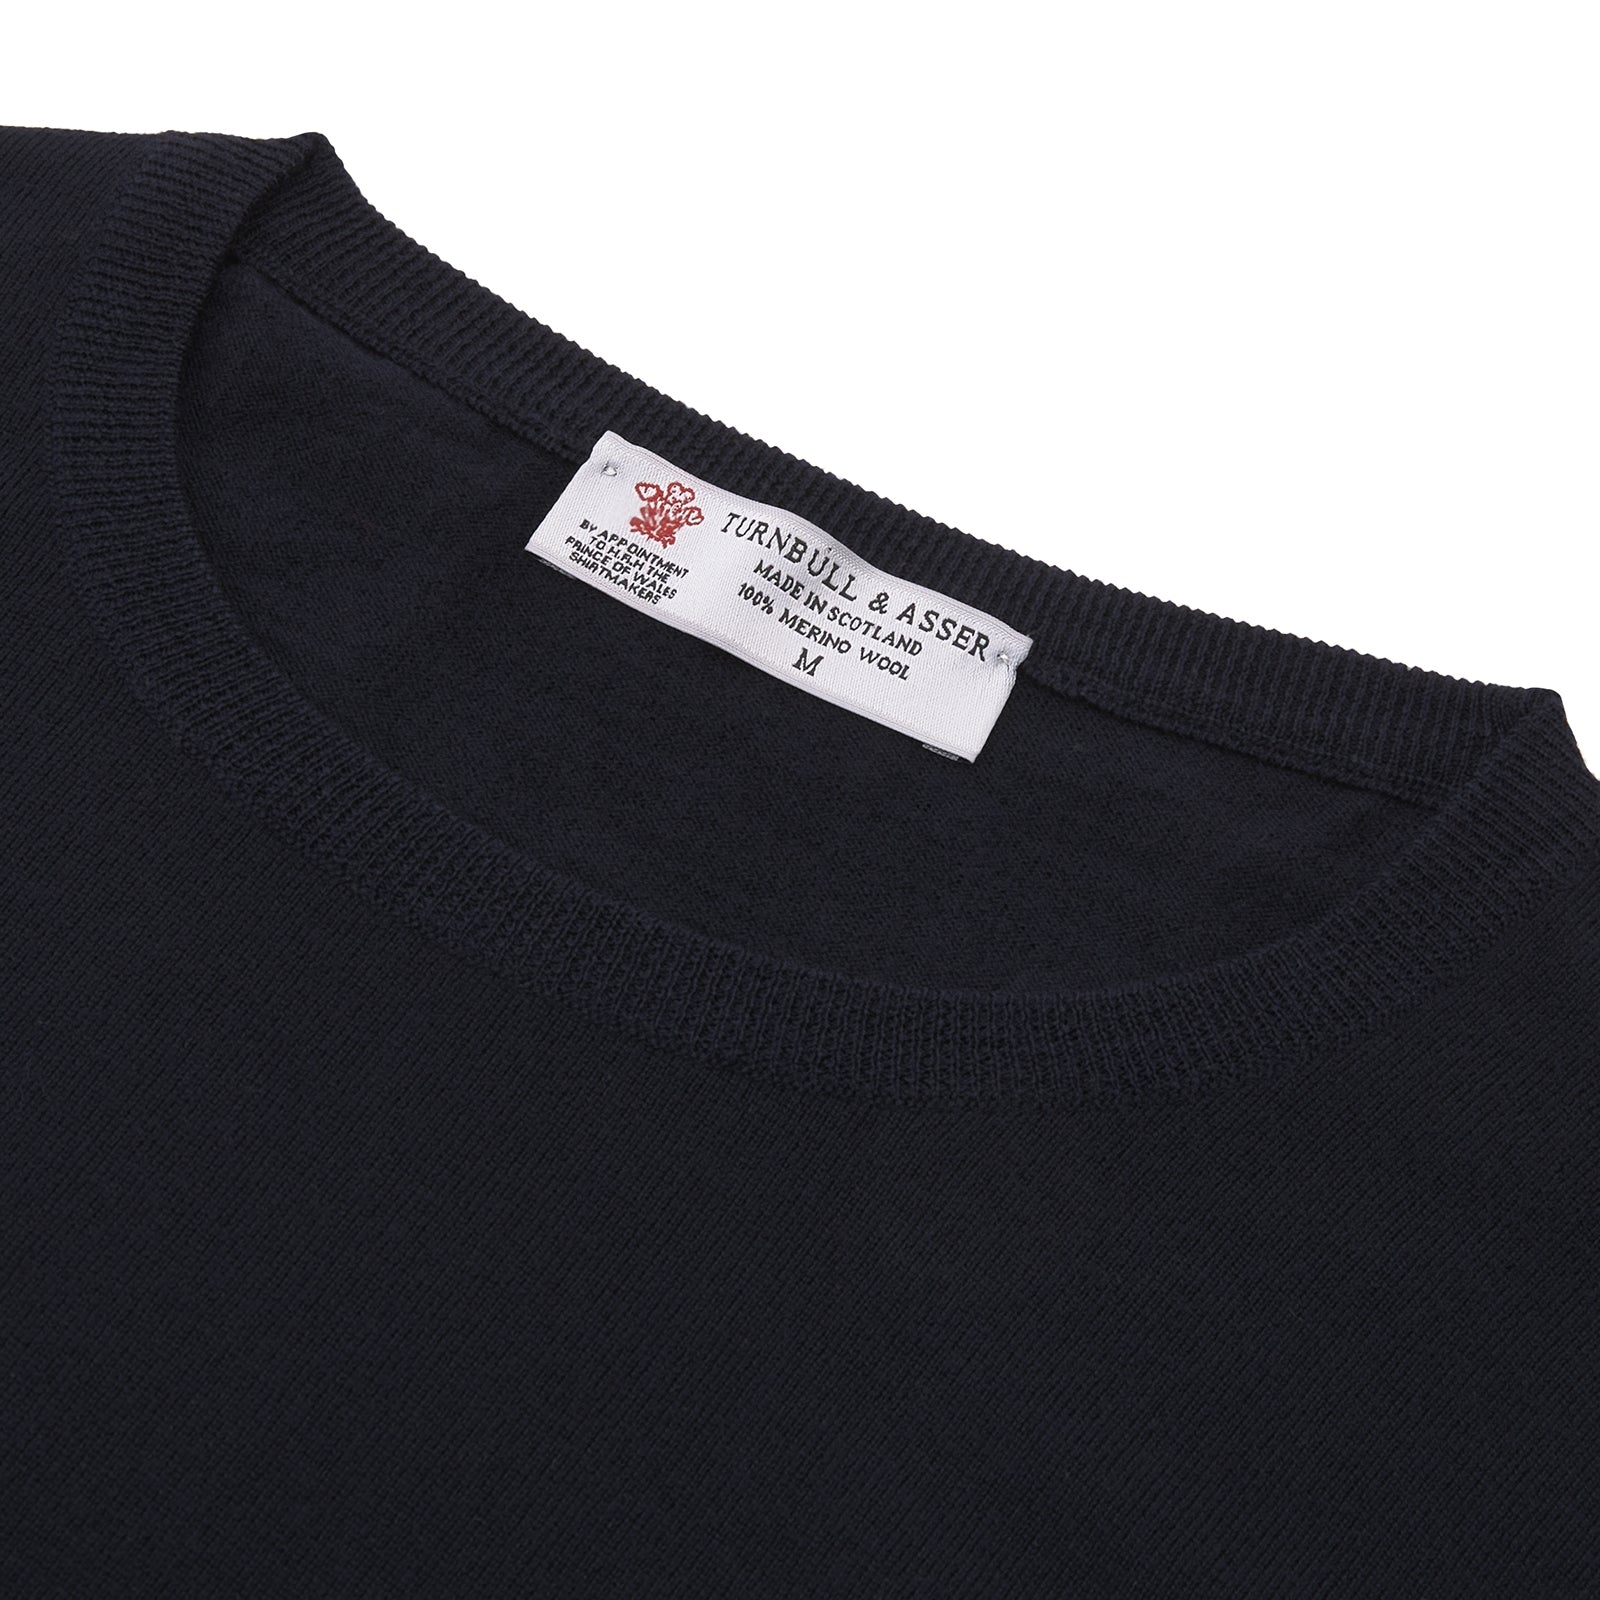 Indigo Crew Neck Merino Wool Jumper